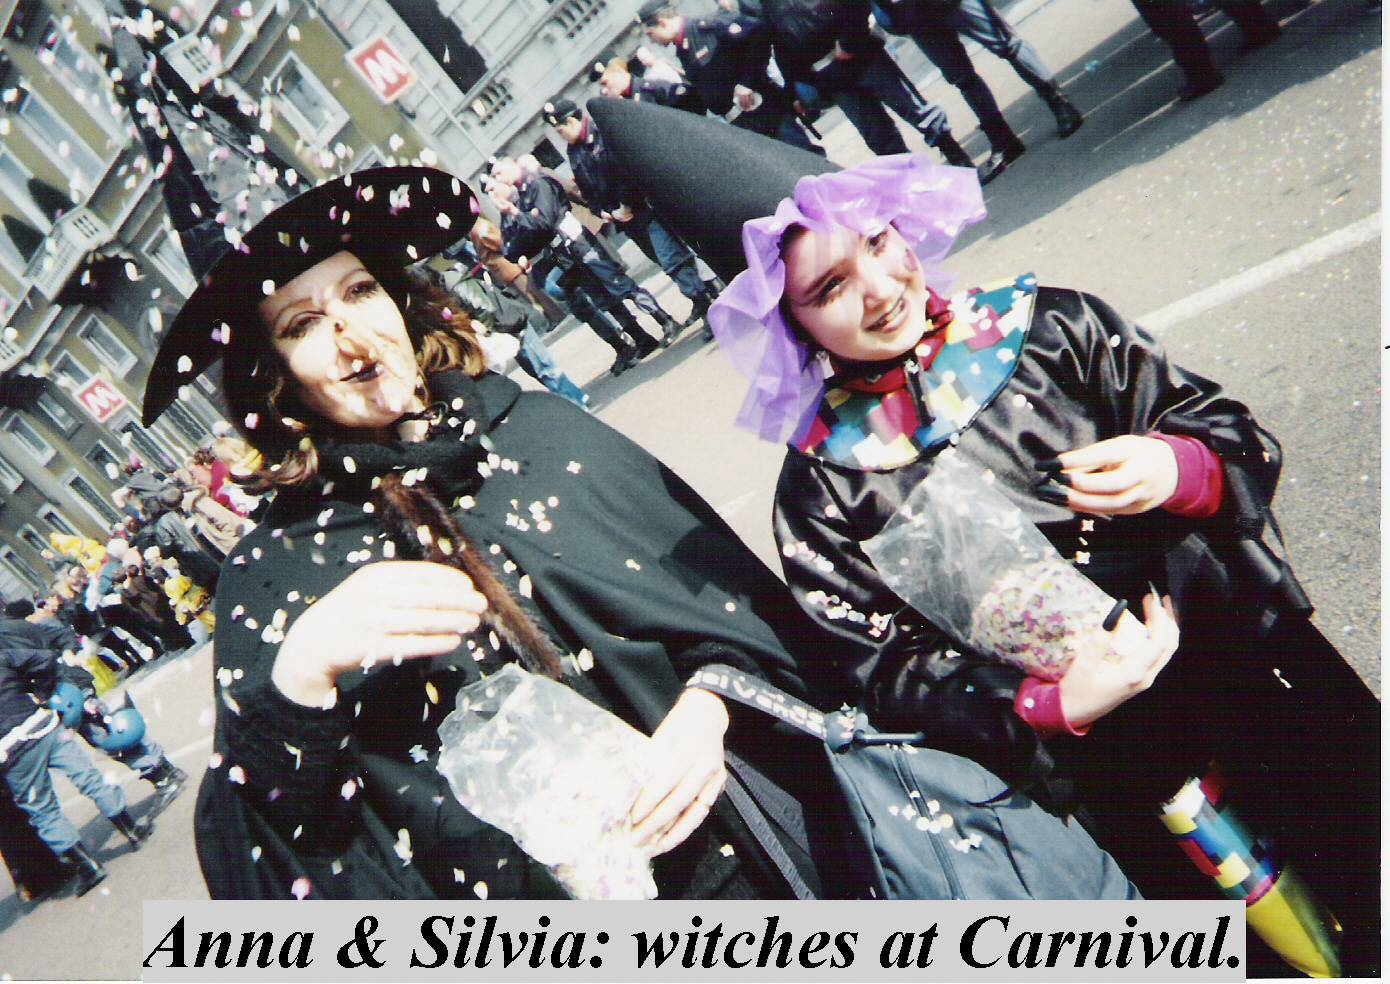 Anna &Silvia as witches